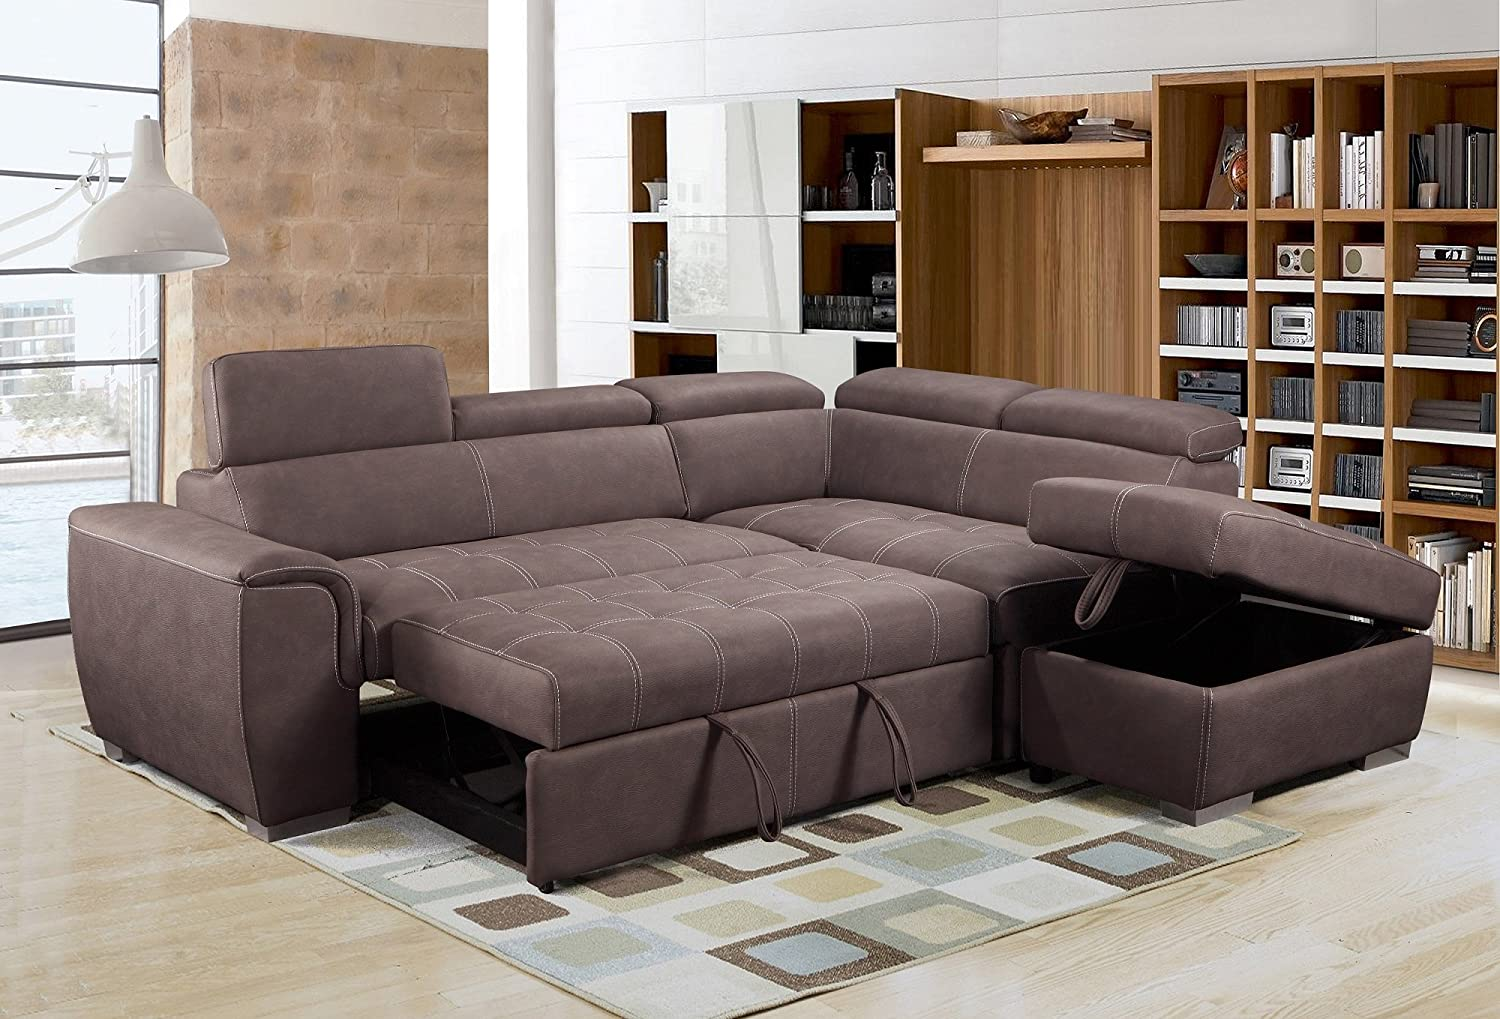 Rienzo Large Brown Fabric Suede Corner Sofa Bed With Tilting Headrest And Storage Ottoman Right Hand Facing Amazon Co Uk Kitchen Home